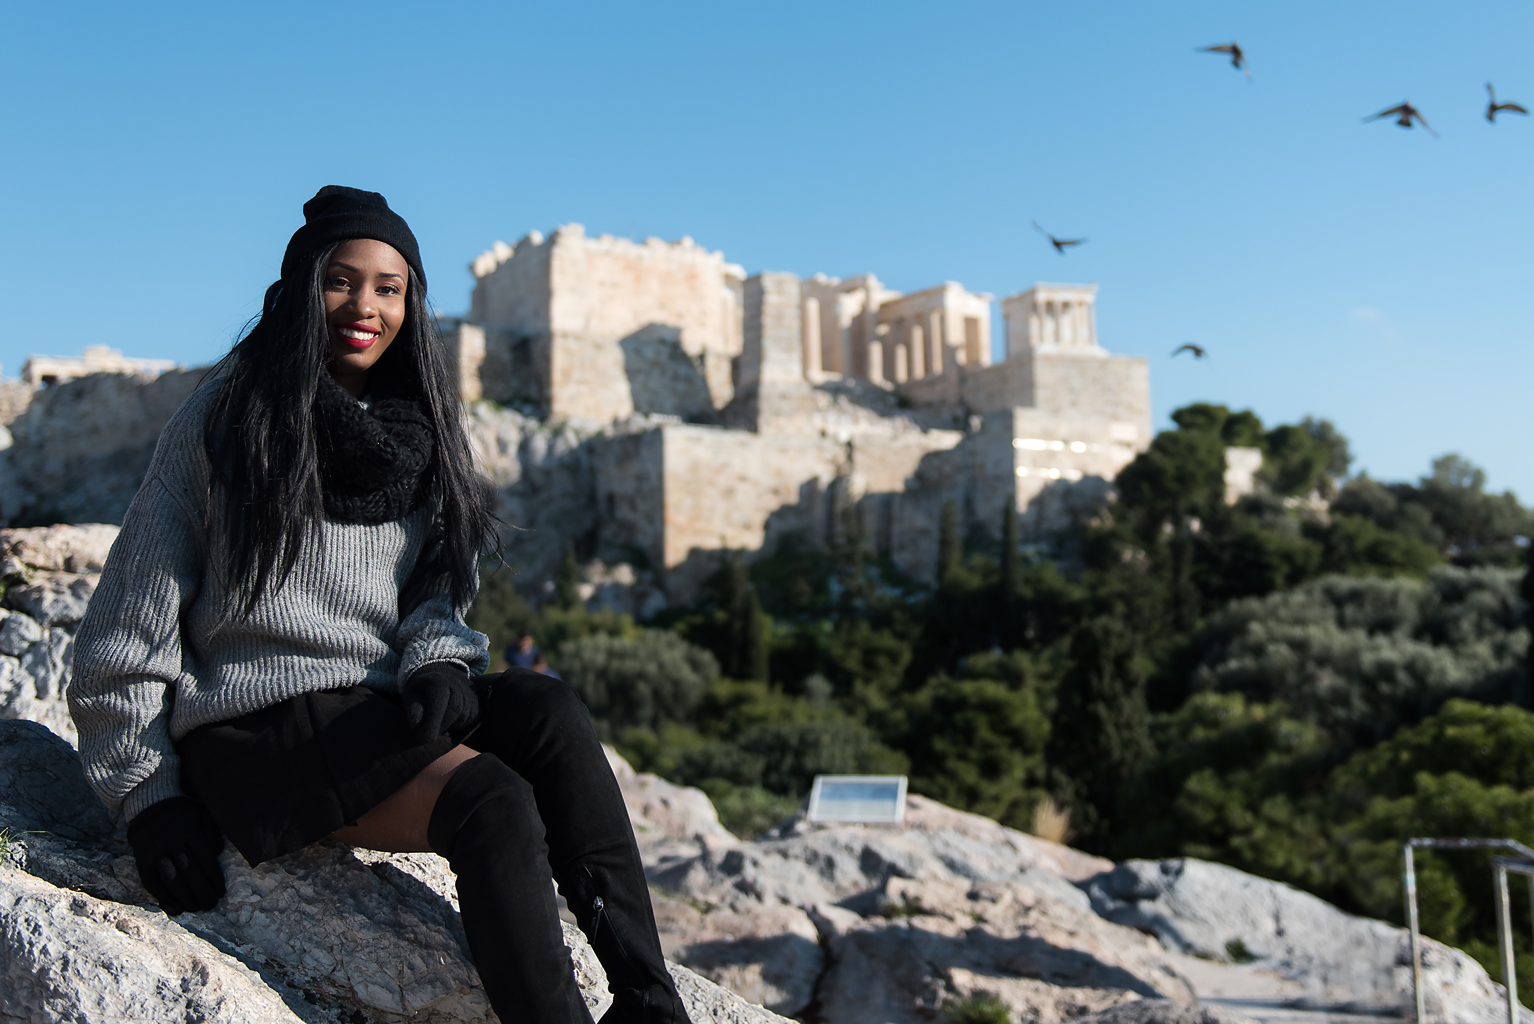 Portrait photoshoot in Acropolis Athens